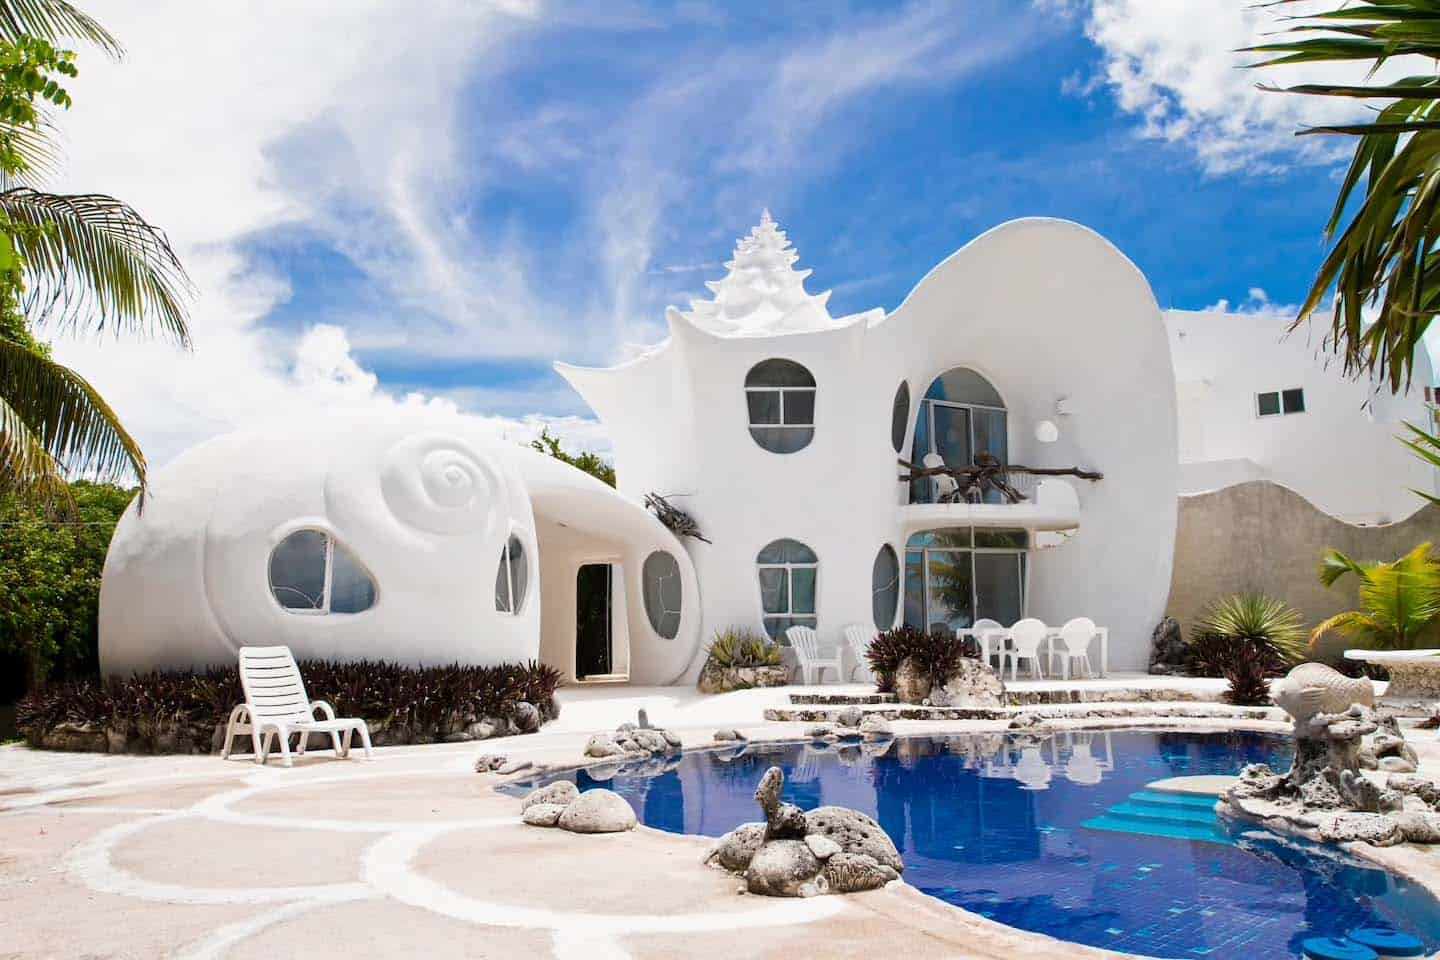 Seashell House-Casa Caracol-Isla Mujeres-Mexico-01-1 Kindesign